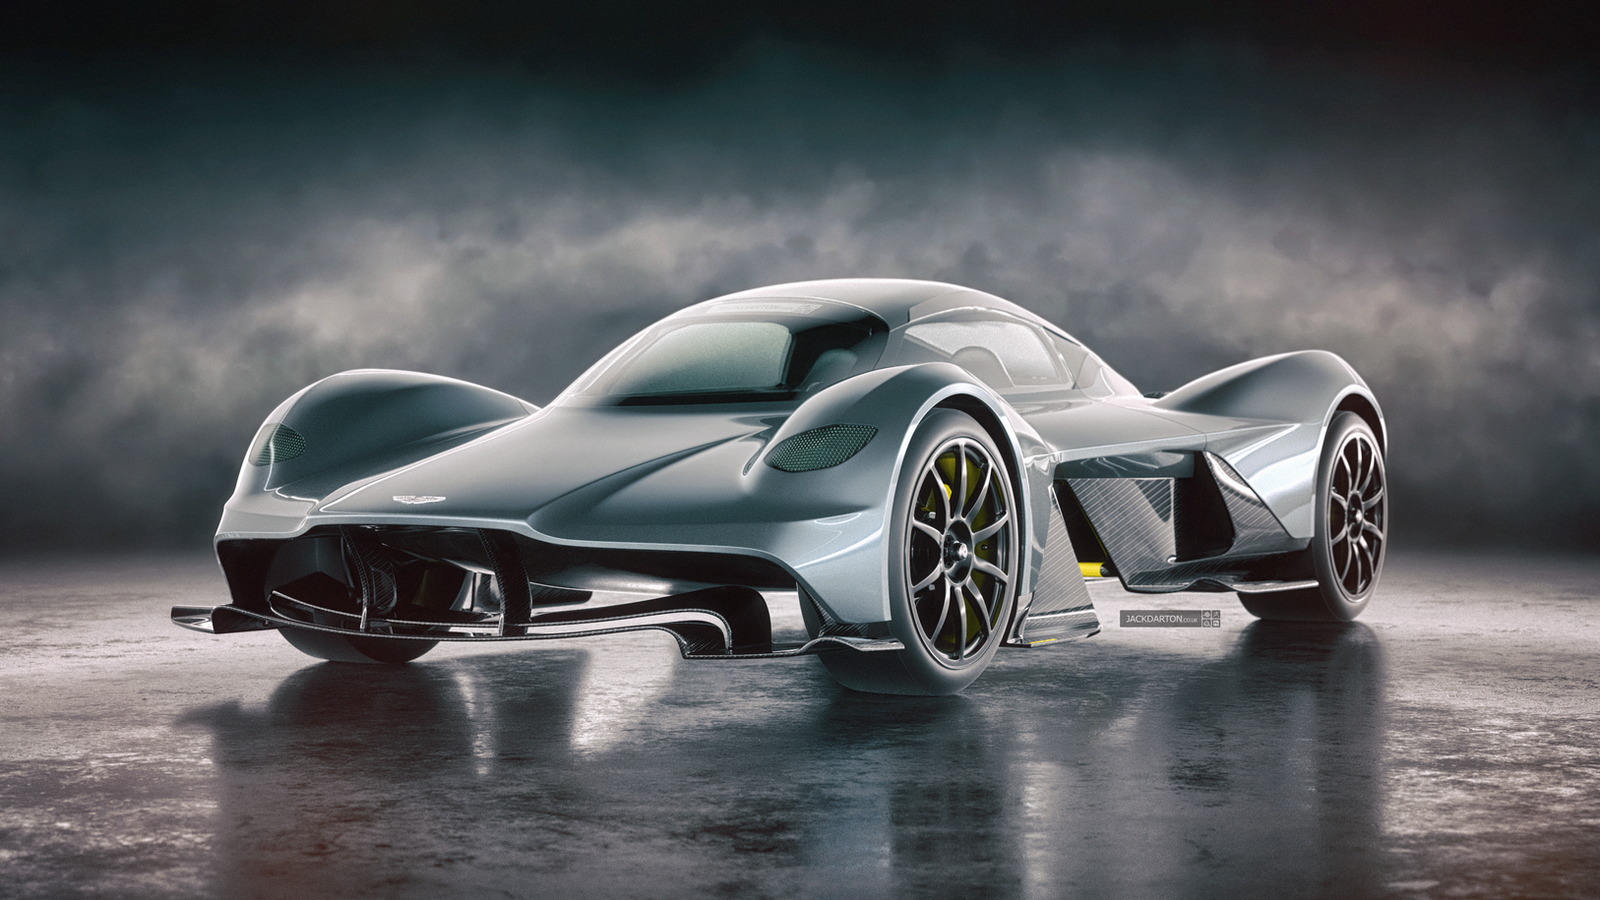 Aston Martin Valkyrie By Jackdarton On Deviantart